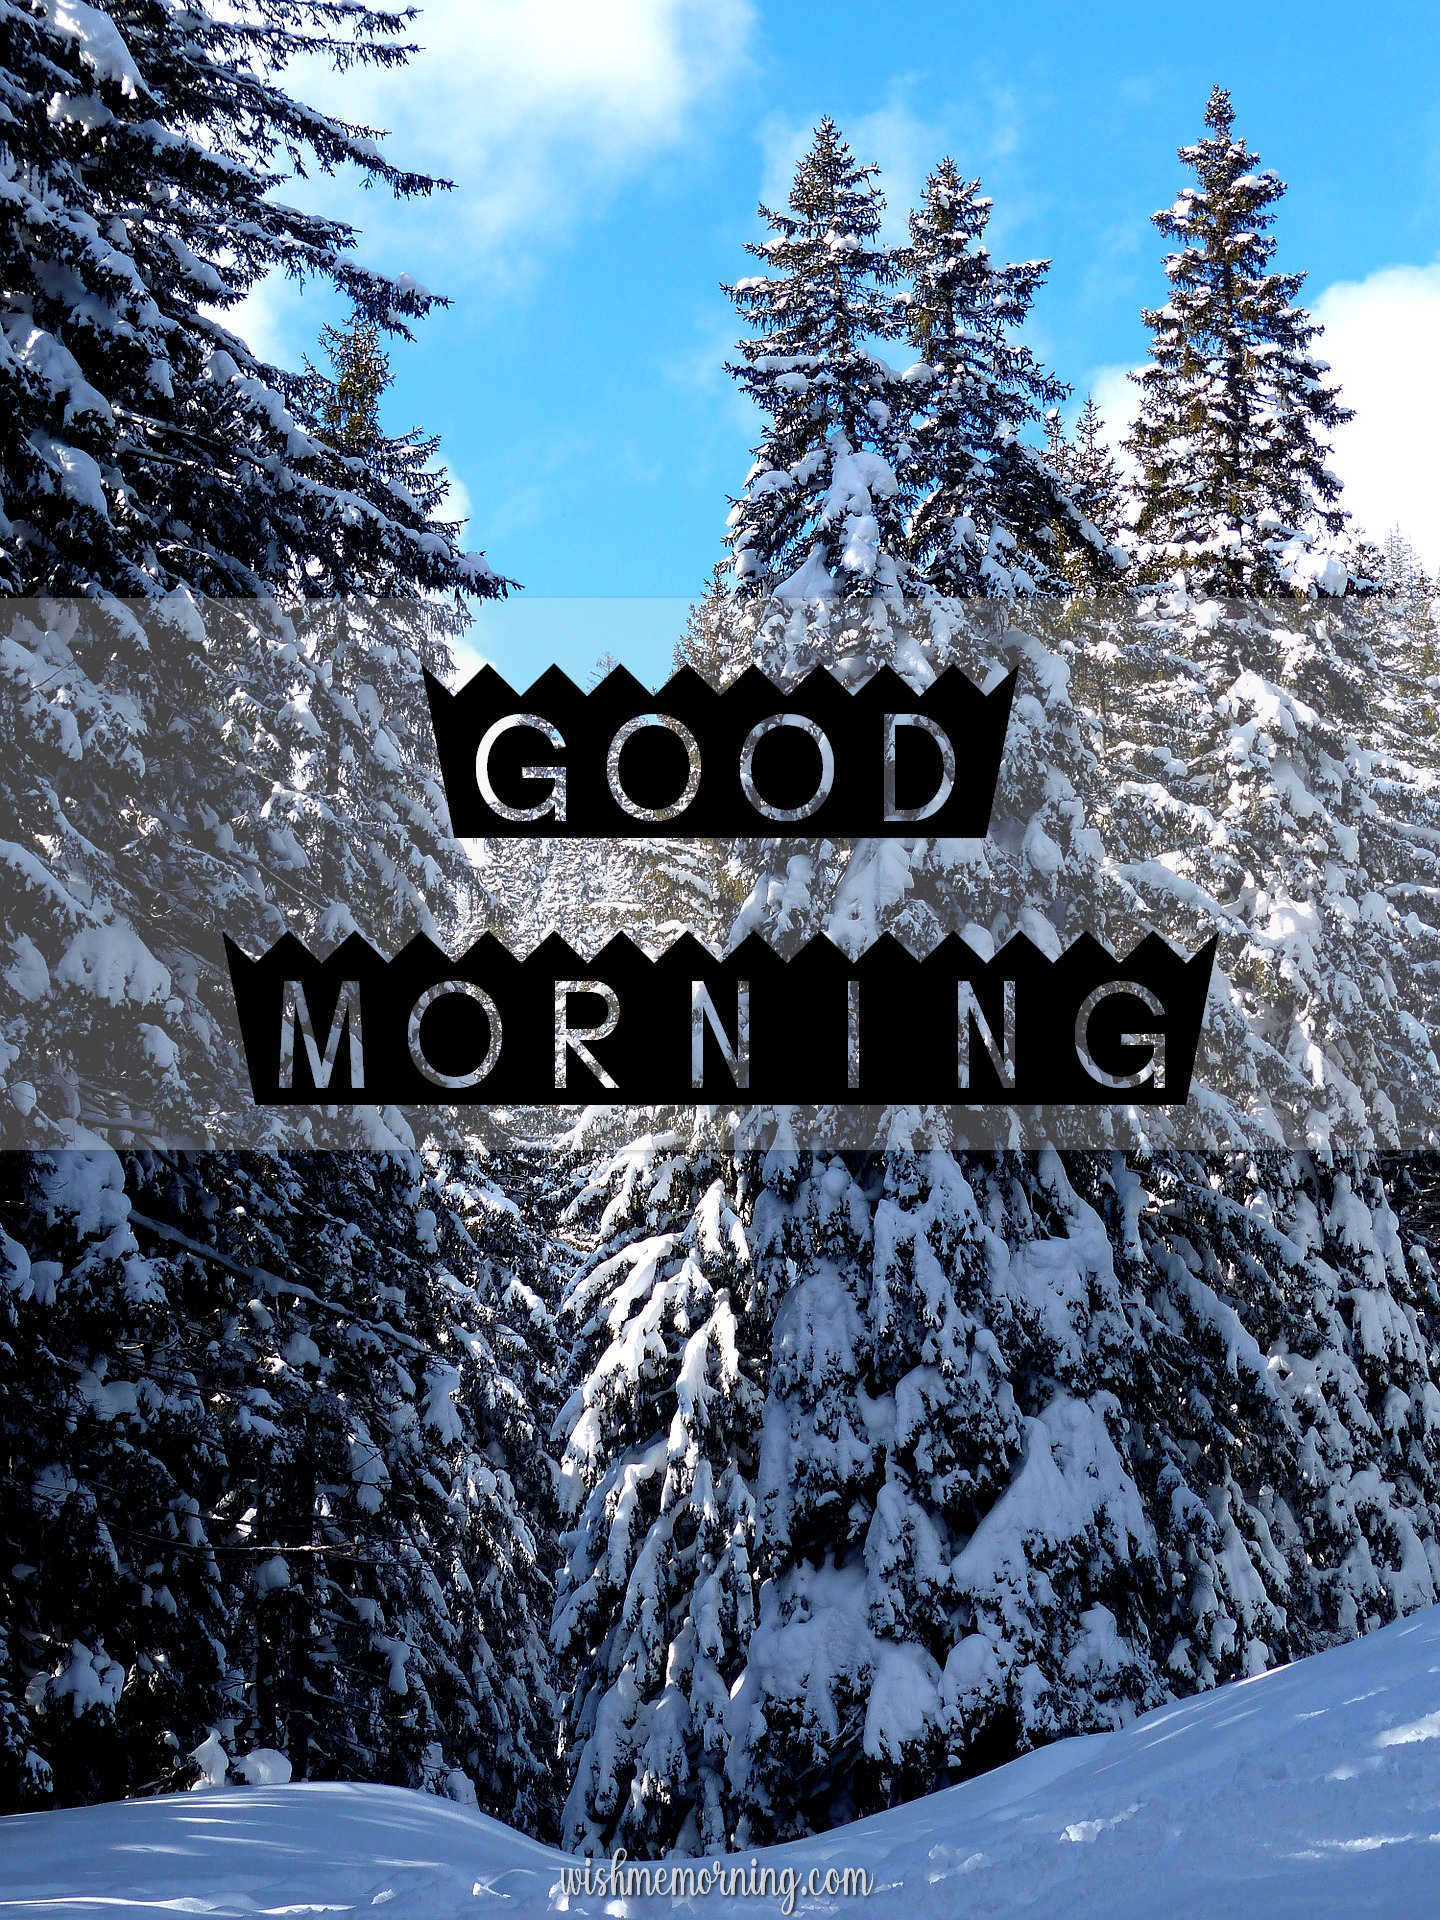 Beautiful Trees Woods Nature Images Wishes wishmemorning.com 3